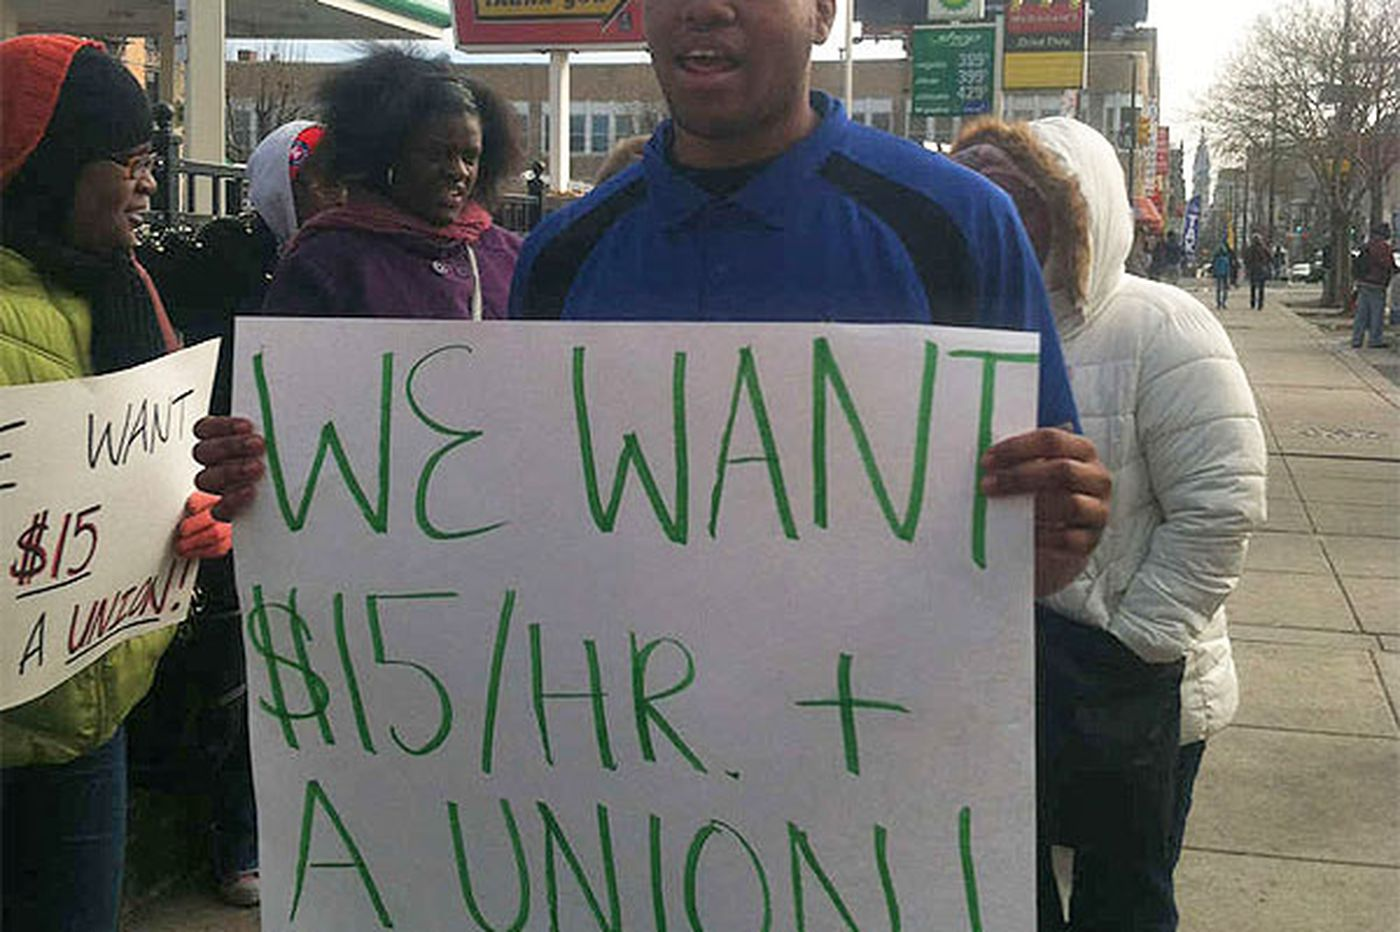 Pa. rallies call for higher wages